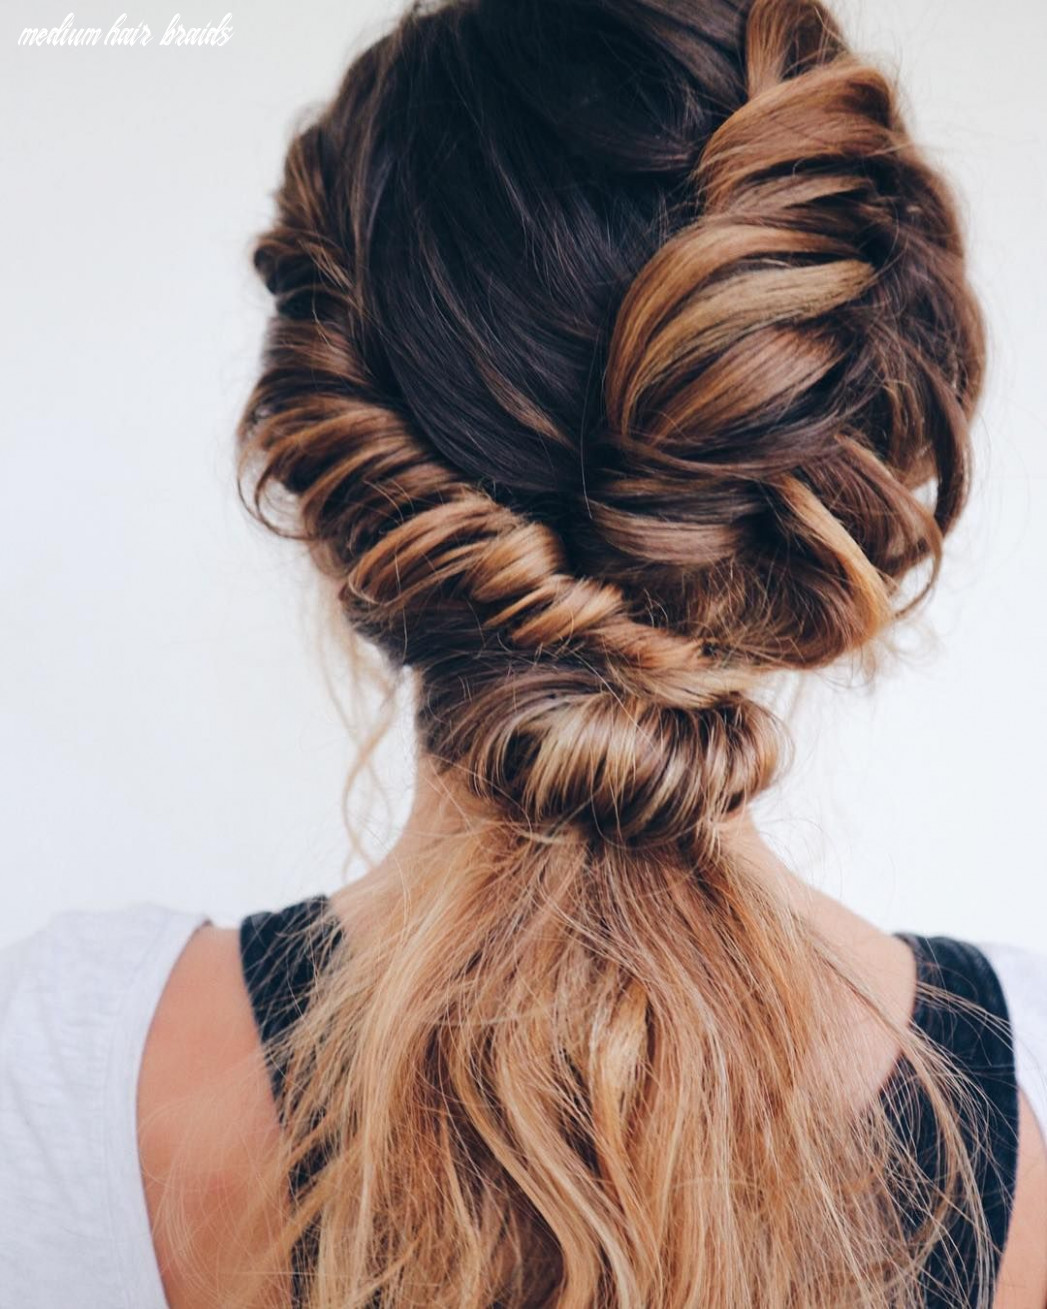 Gorgeous braid hairstyle inspiration (with images)   weekend hair